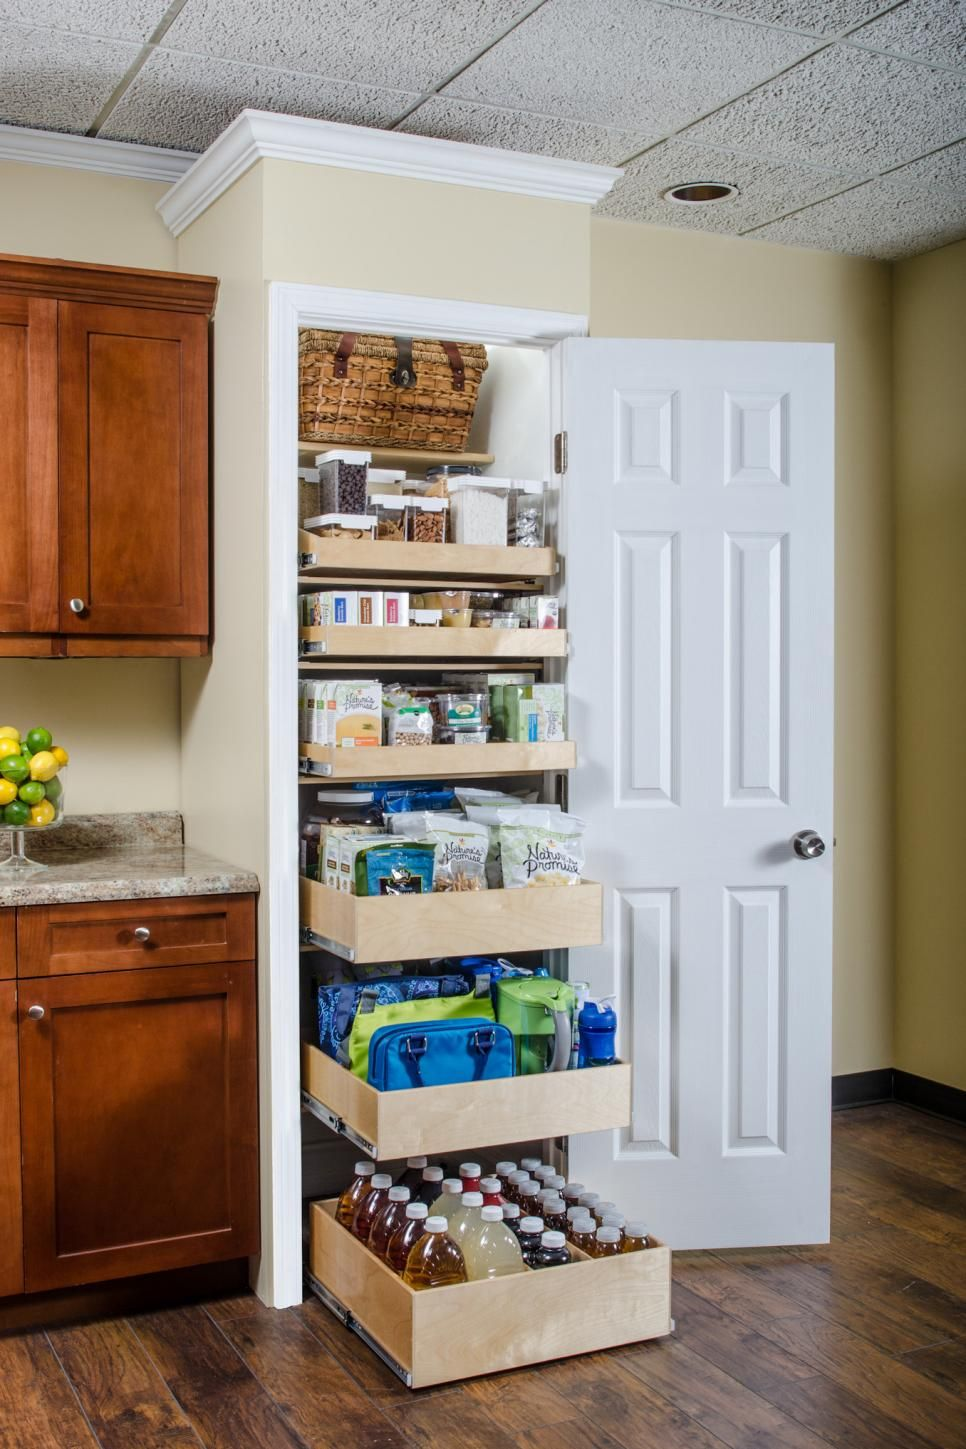 Turn your cluttered kitchen pantry or kitchen